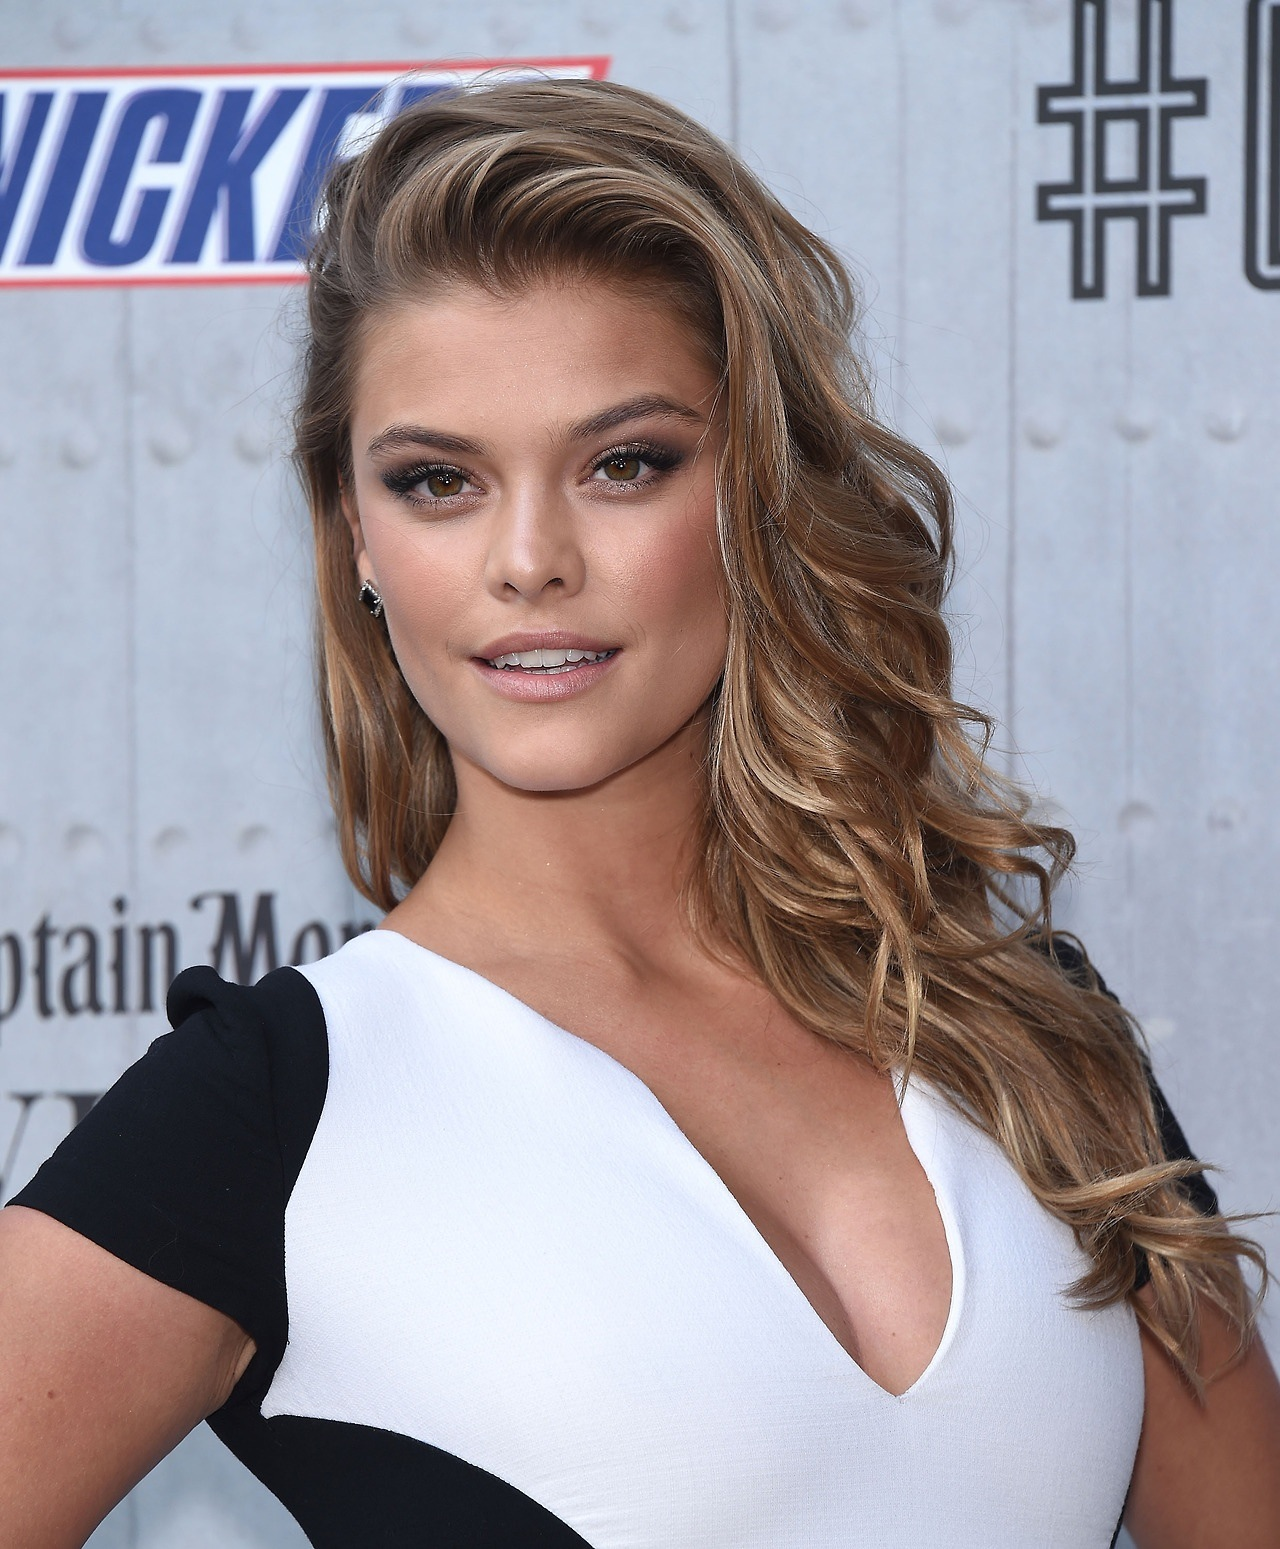 nina-agdal-spike-guys-choice-awards-june-7-2014-in-culver-city-california-arrivals-06